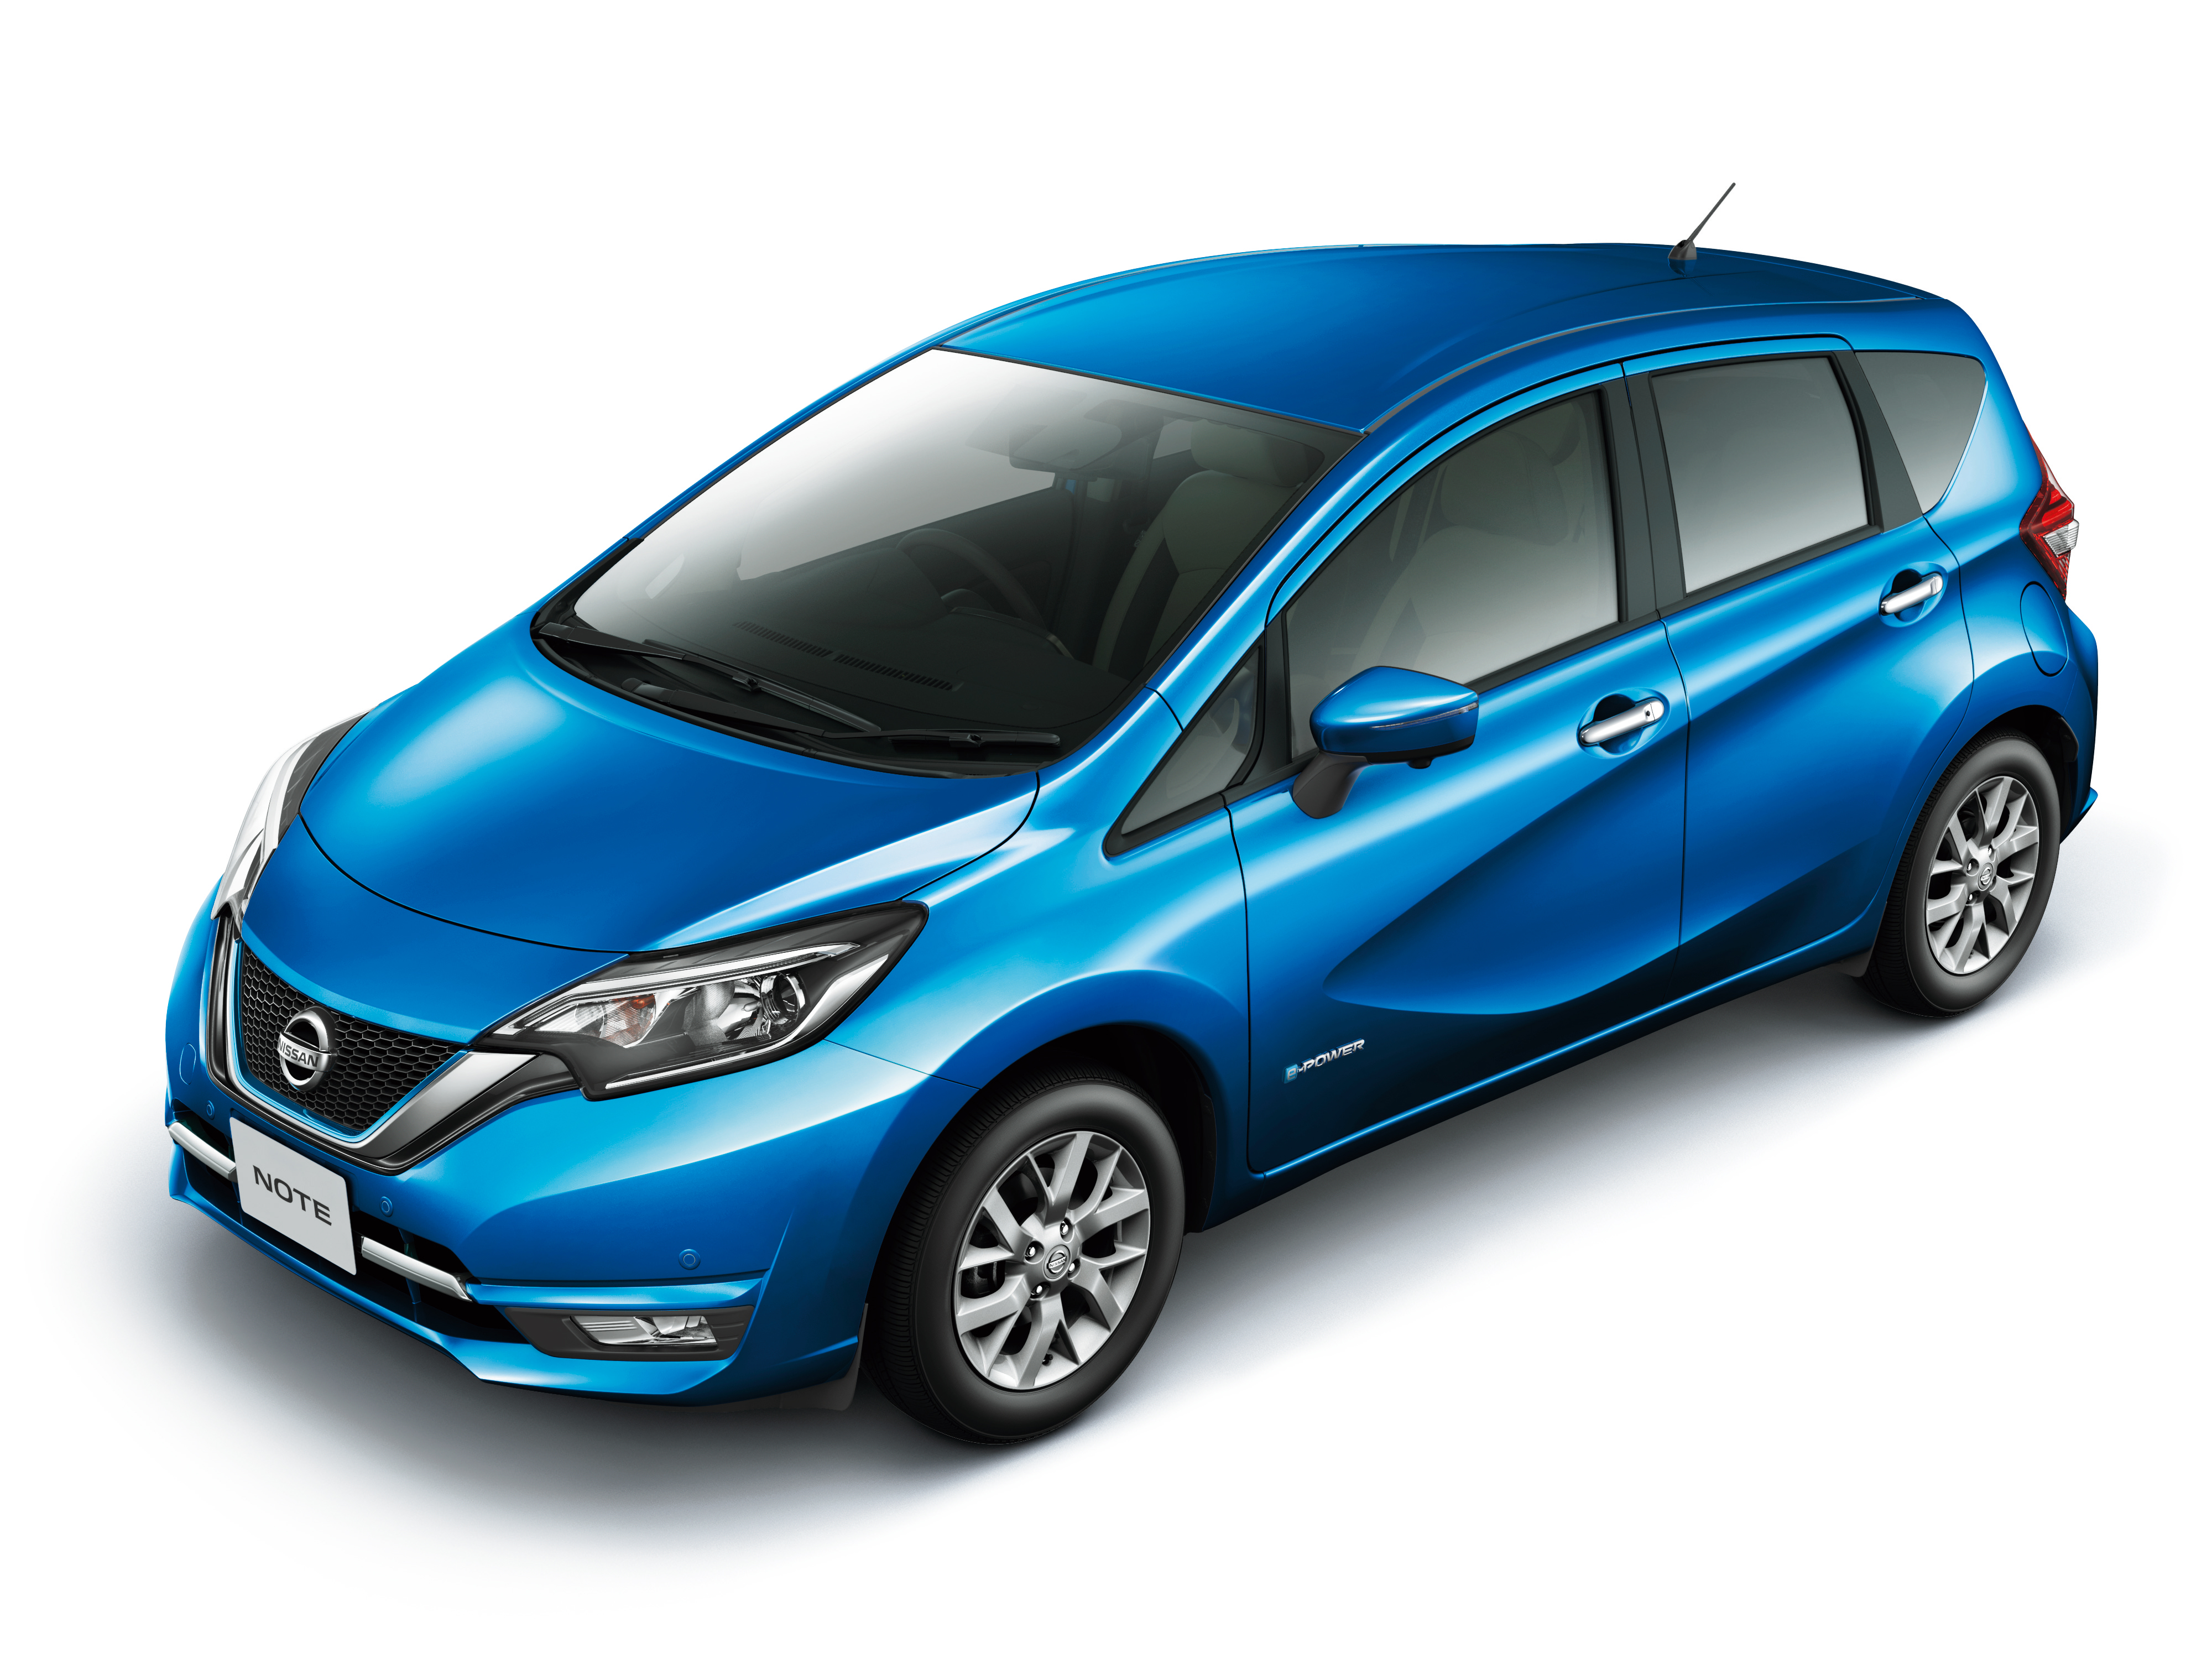 Nissan 2018 >> Nissan Note e-Power detailed – range extender hybrid without plug-in socket, 1.2L engine, 37.2 ...